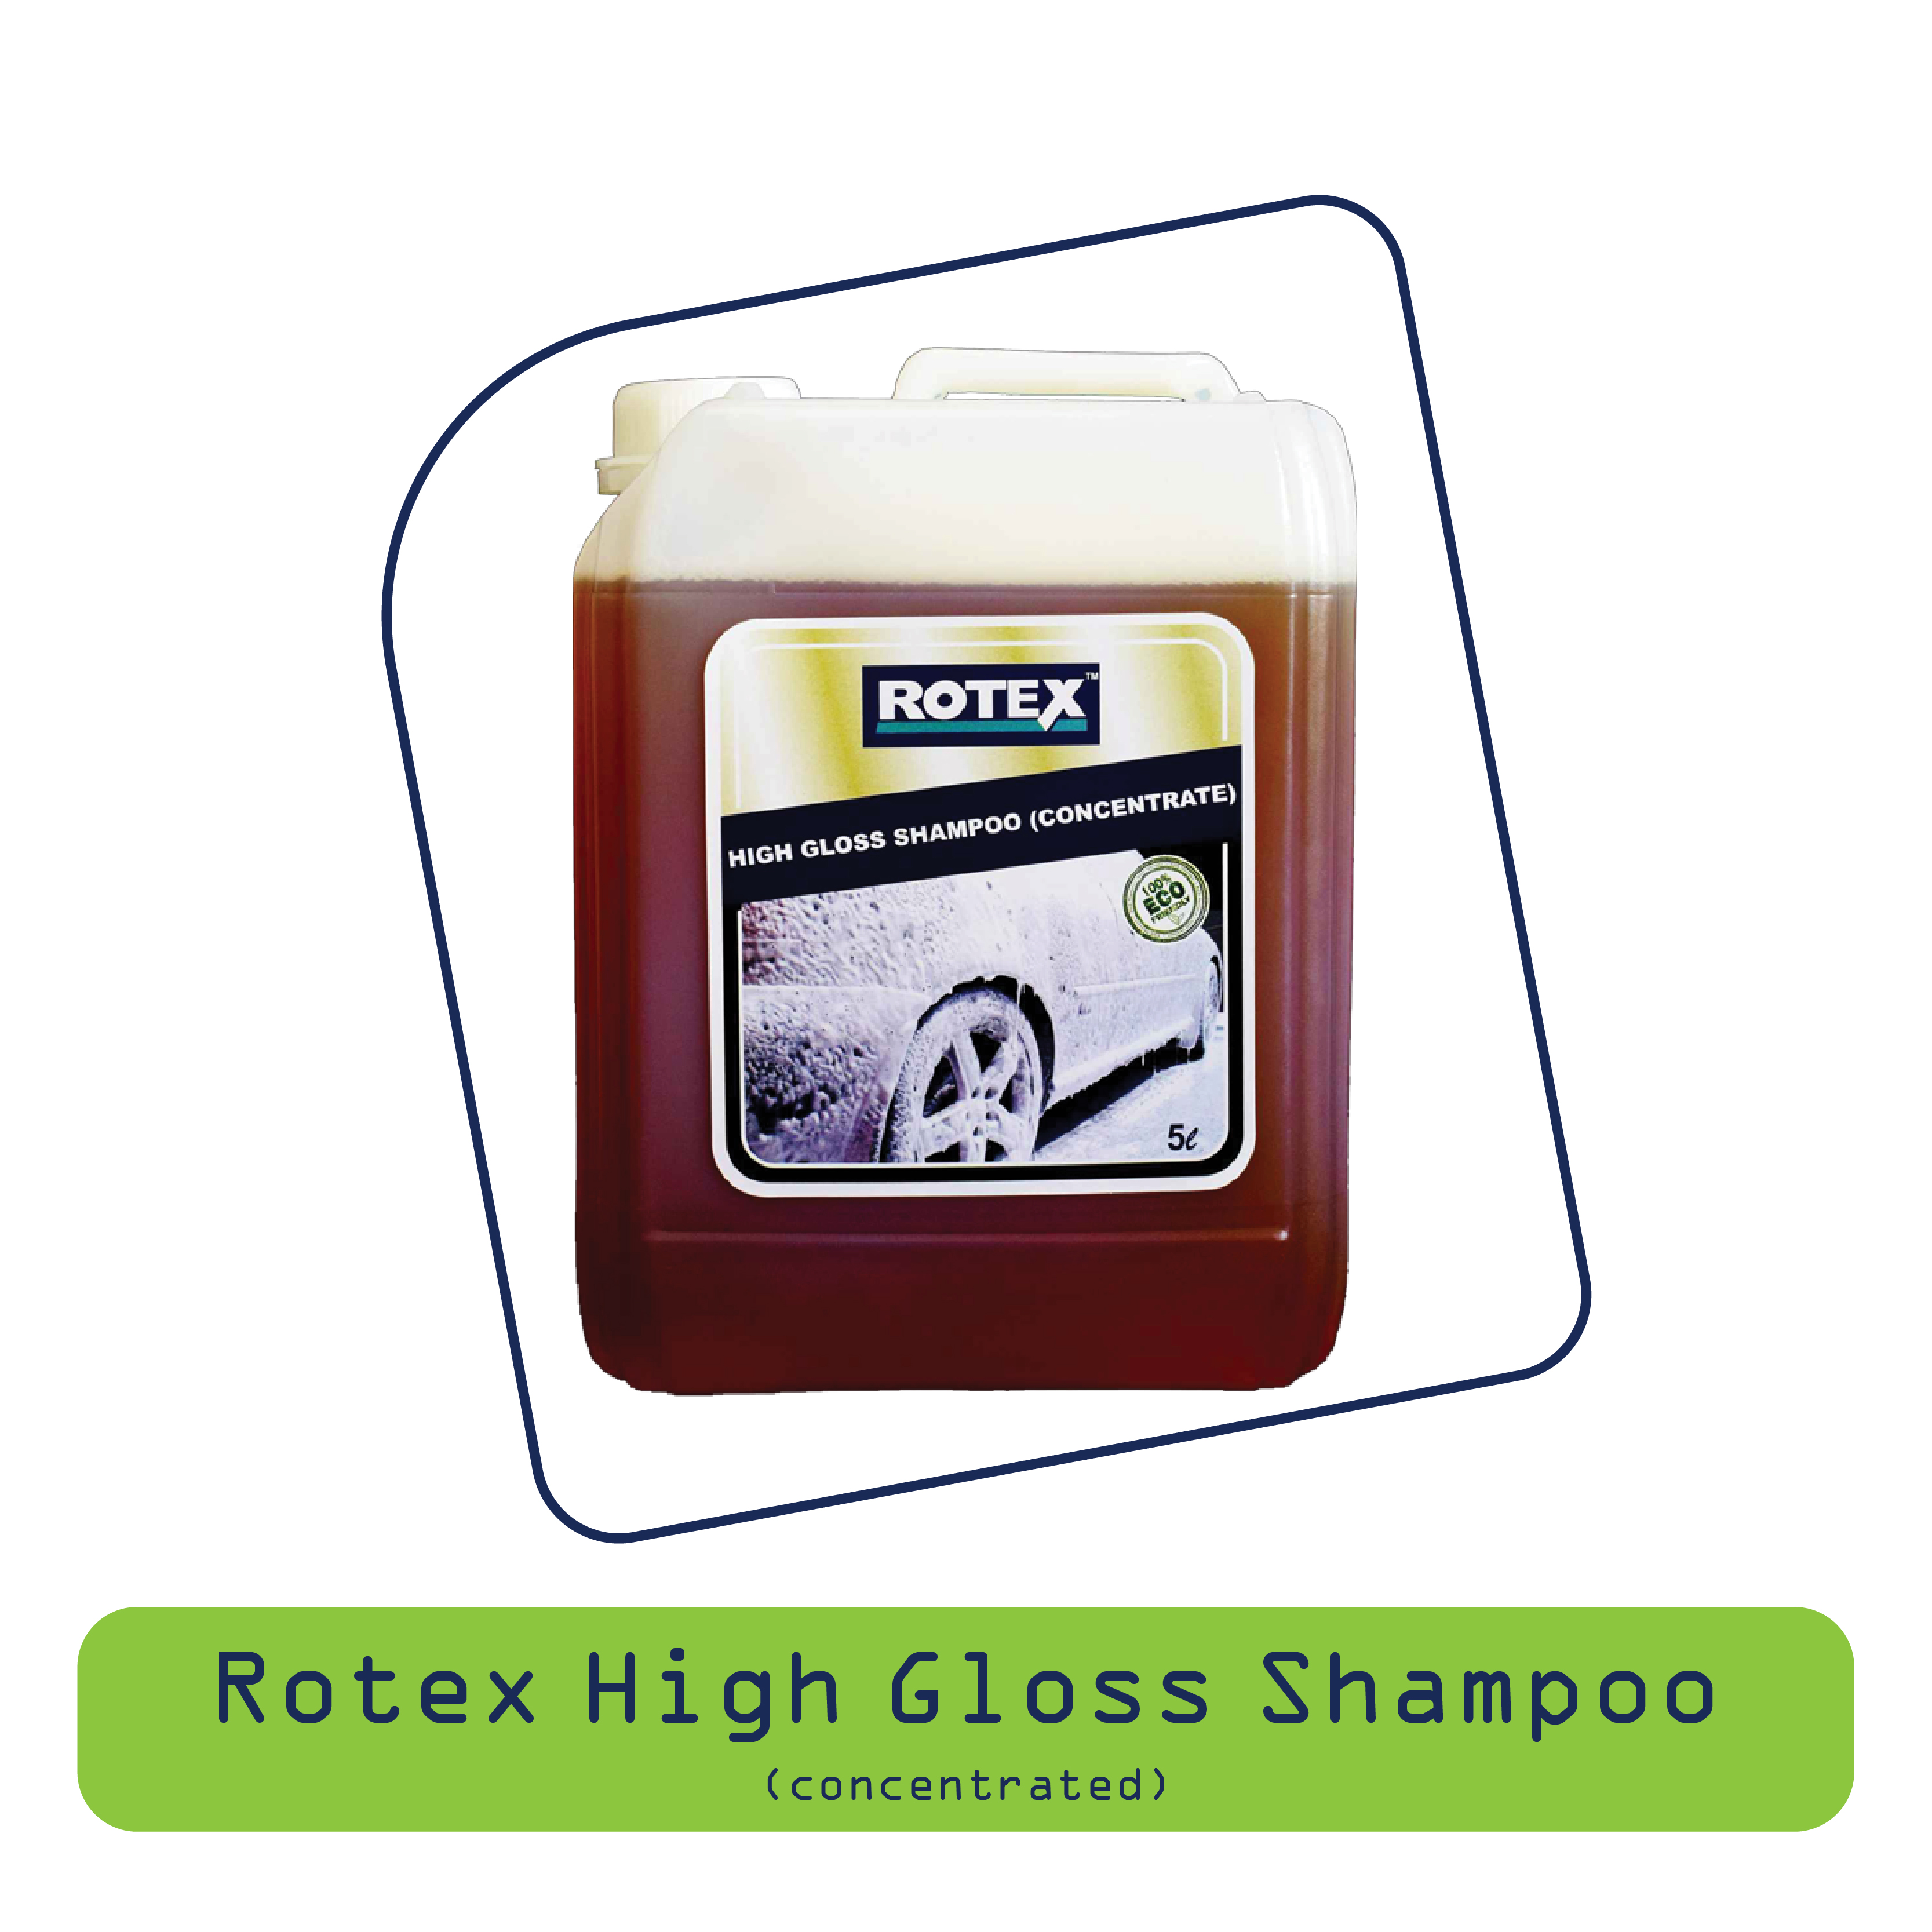 Rotex High Gloss Shampoo (Concerntrated)